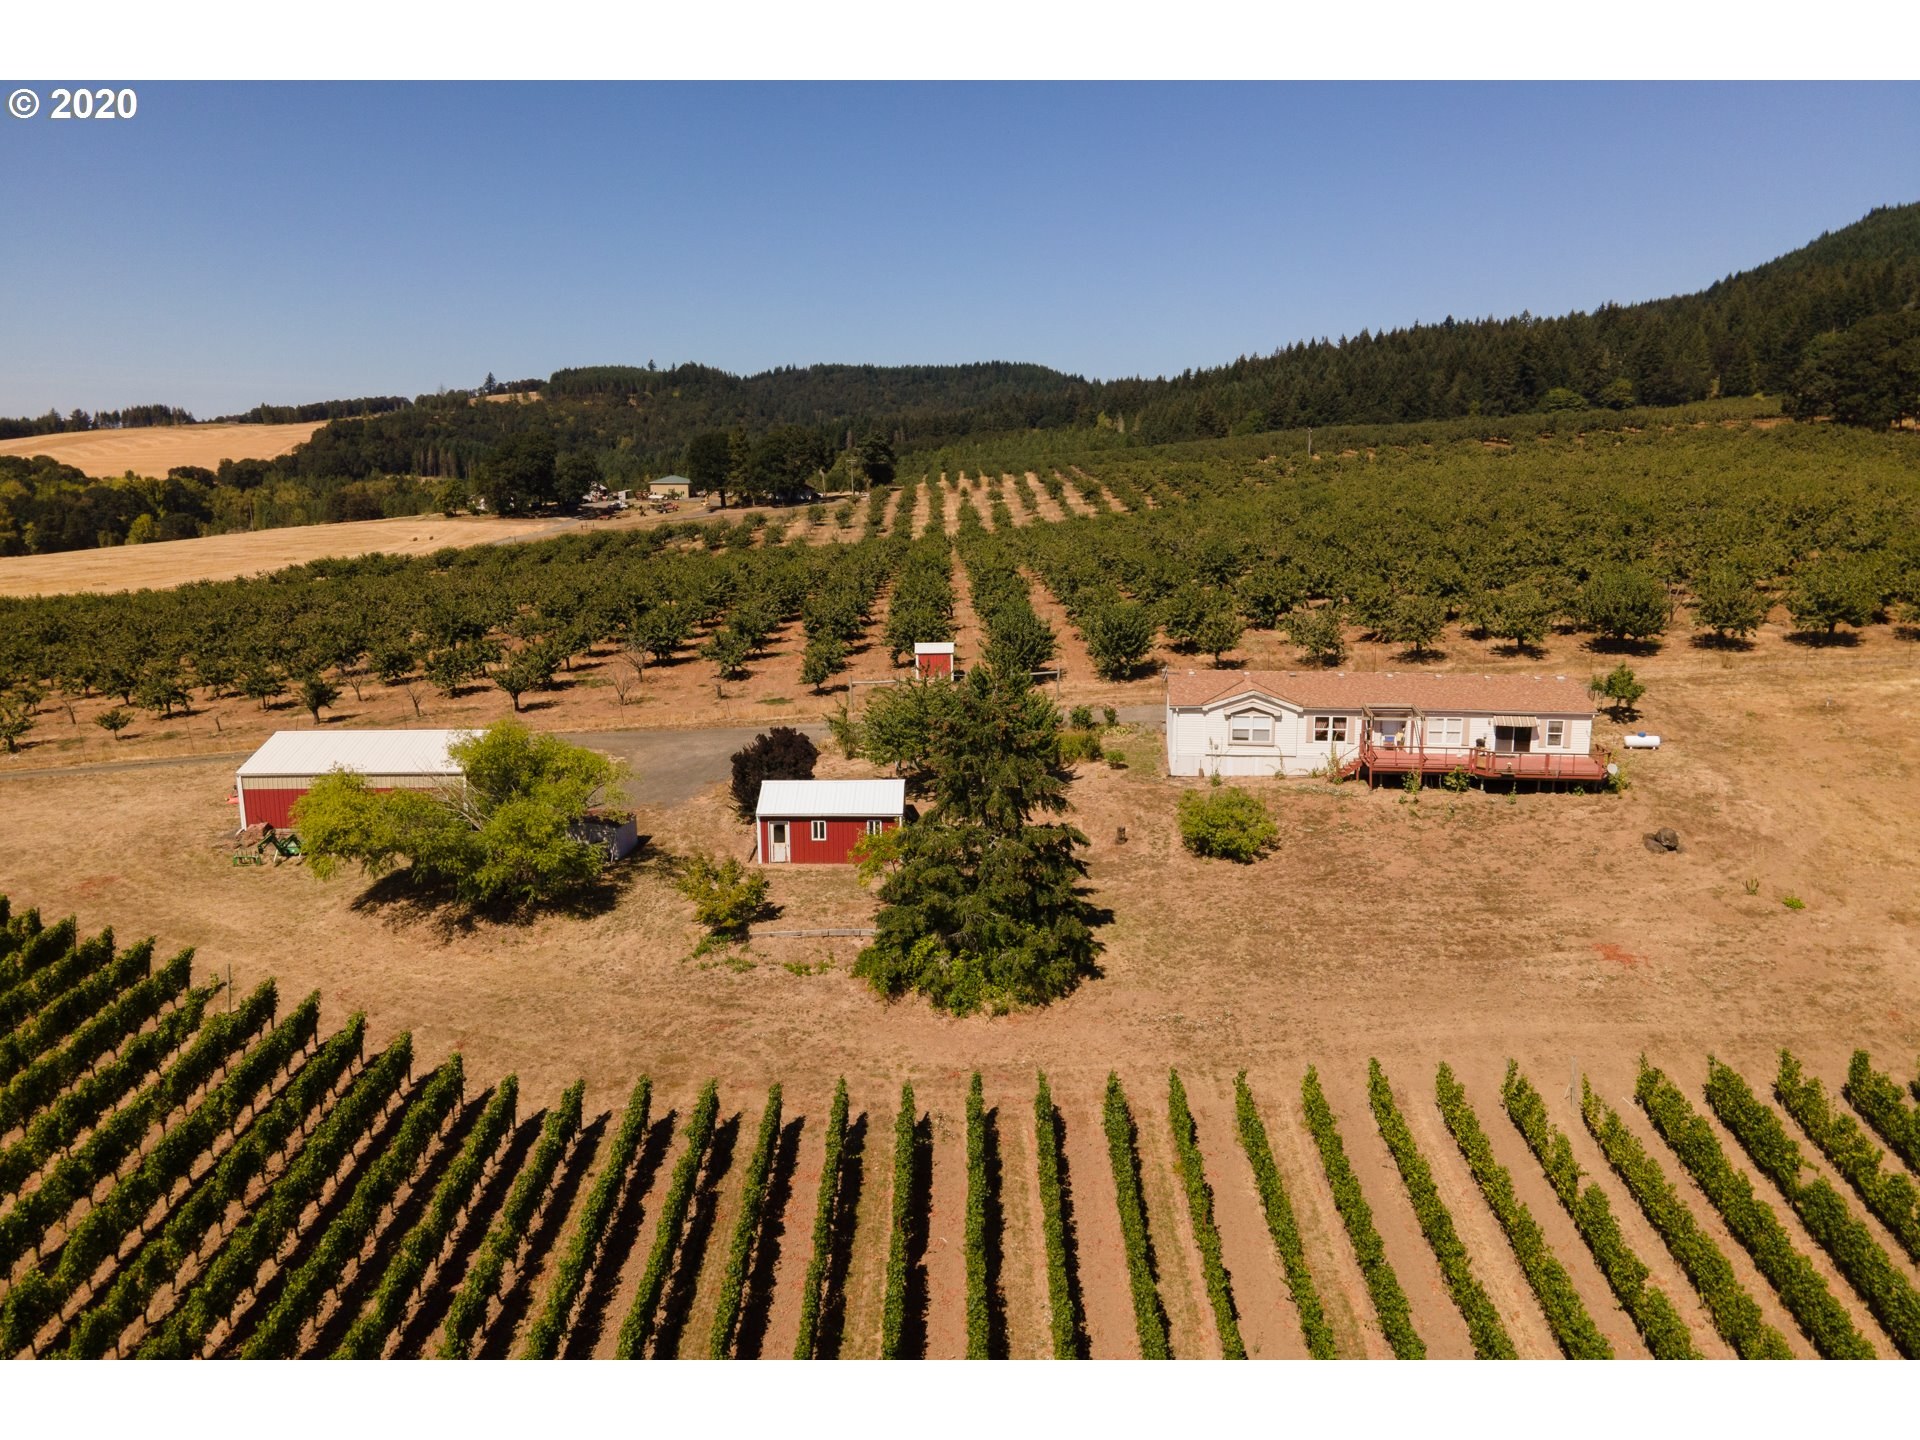 3480 NORTH OAK GROVE RD, Rickreall, Oregon 97371, 3 Bedrooms Bedrooms, ,2 BathroomsBathrooms,Residential,For Sale,3480 NORTH OAK GROVE RD,1,20421011